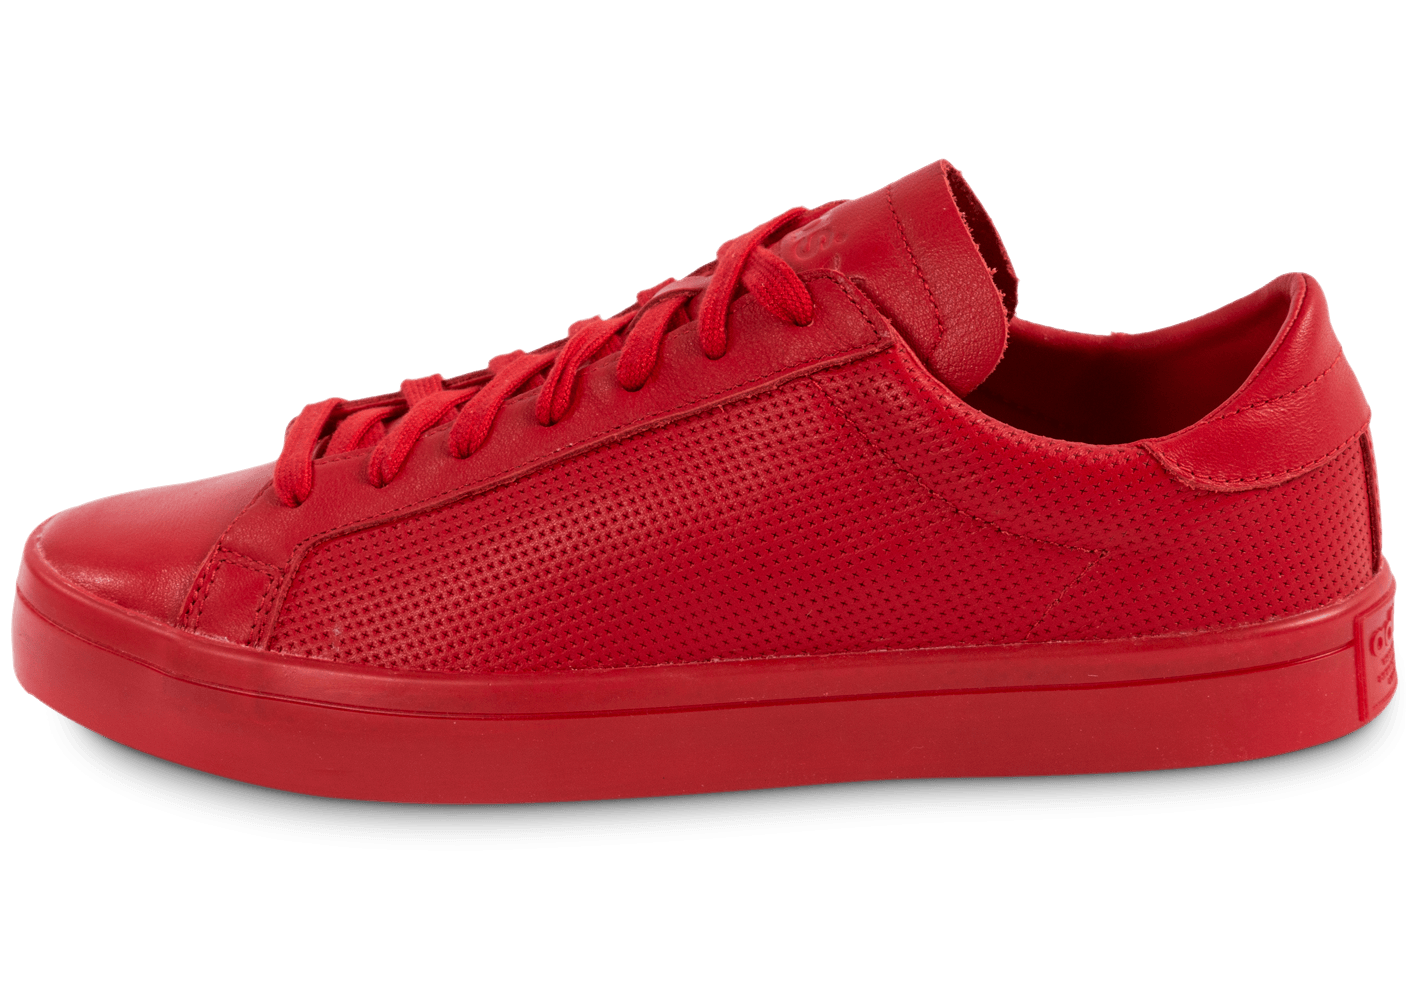 Chaussures - Courts Rouge XPpoT27LS